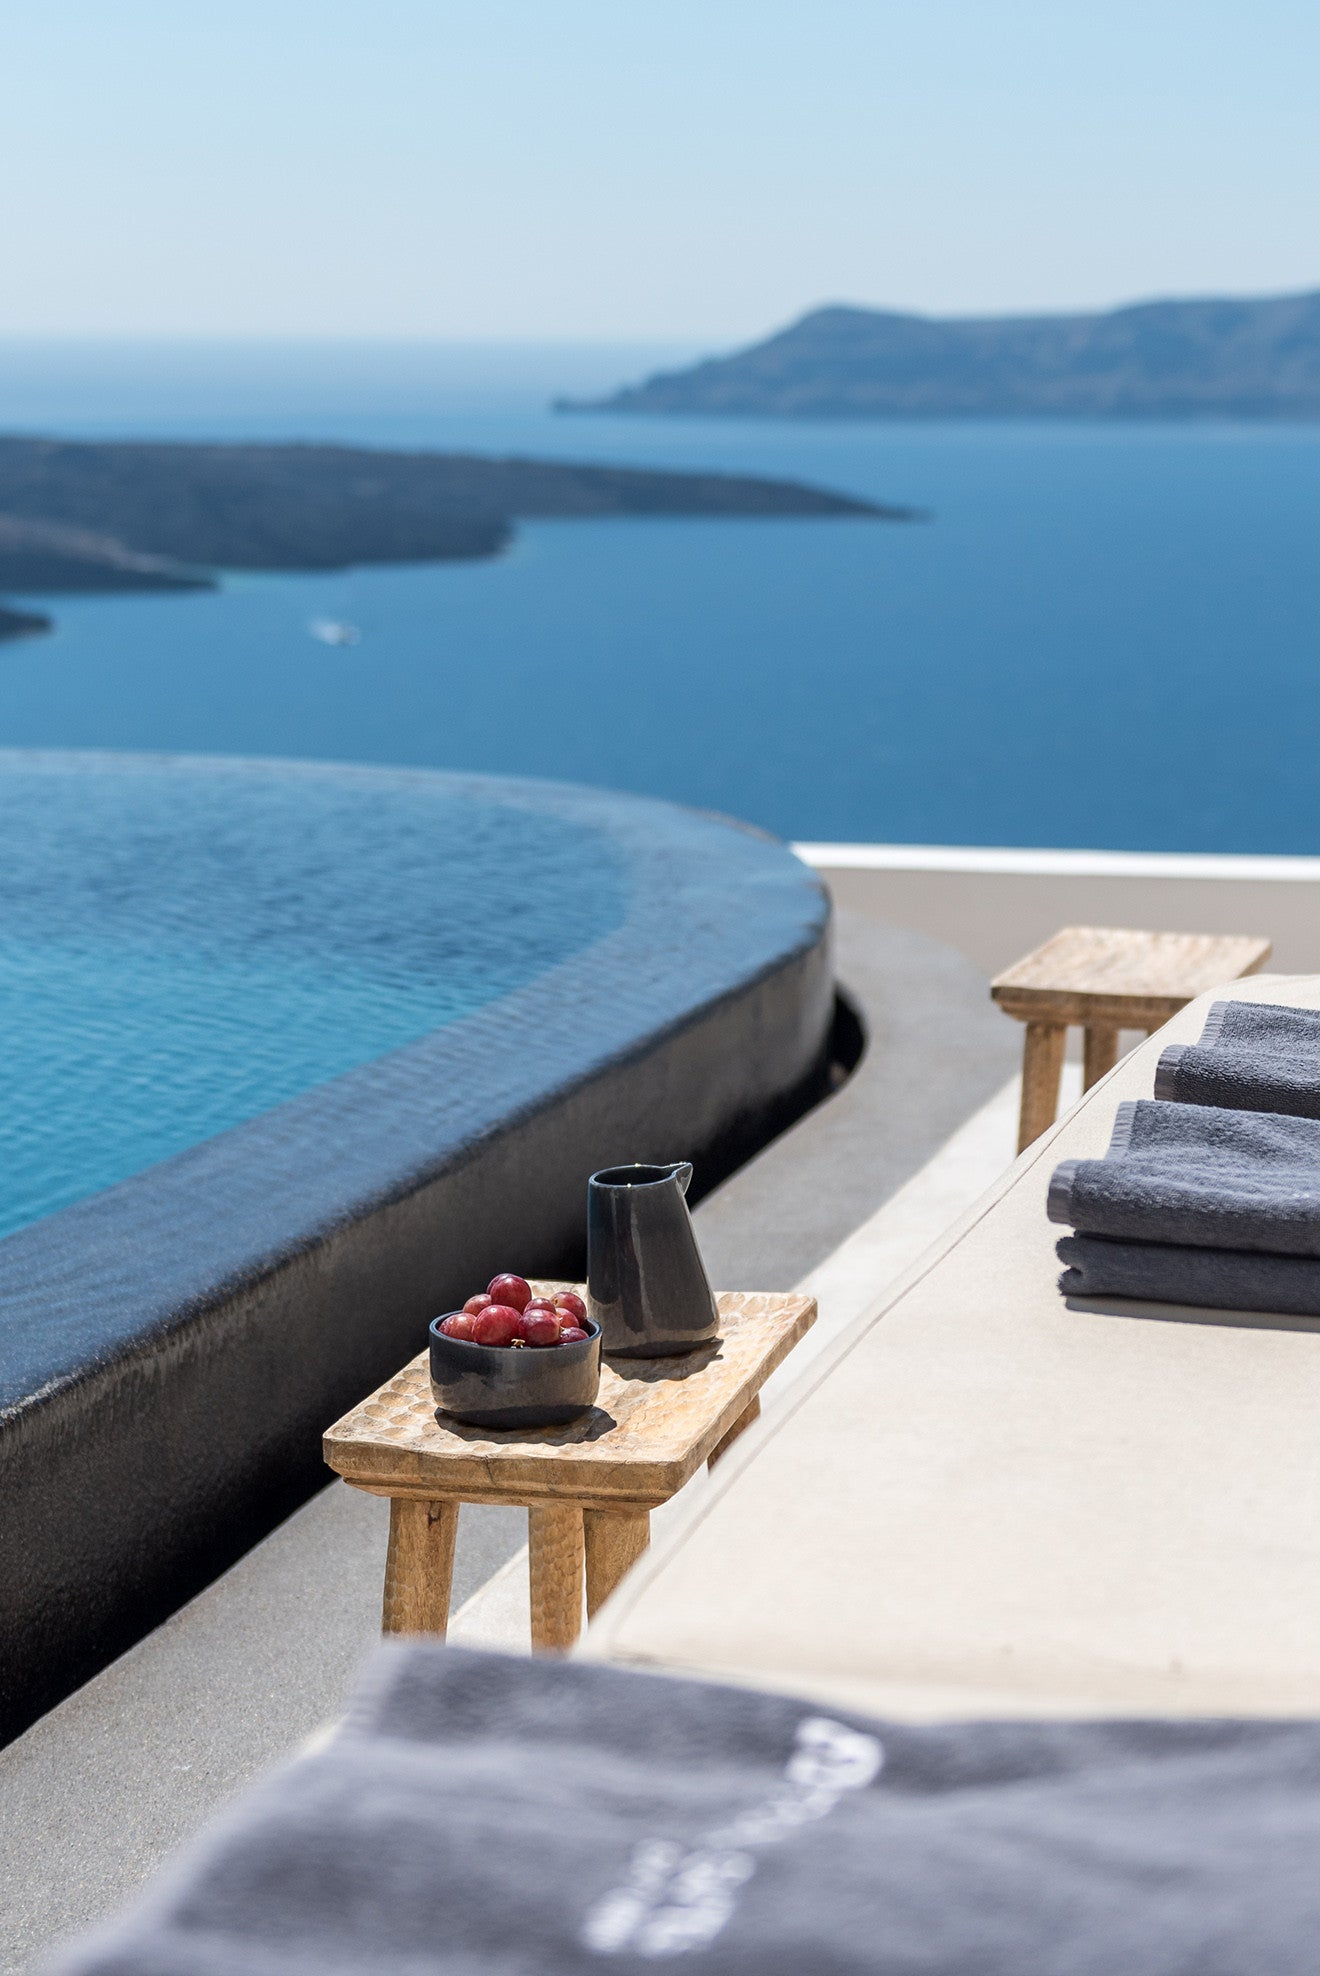 Black infinity pool looking out across the sea at Santorini - Laboratorium designs the beautiful Porto Fira Suites in Santorini